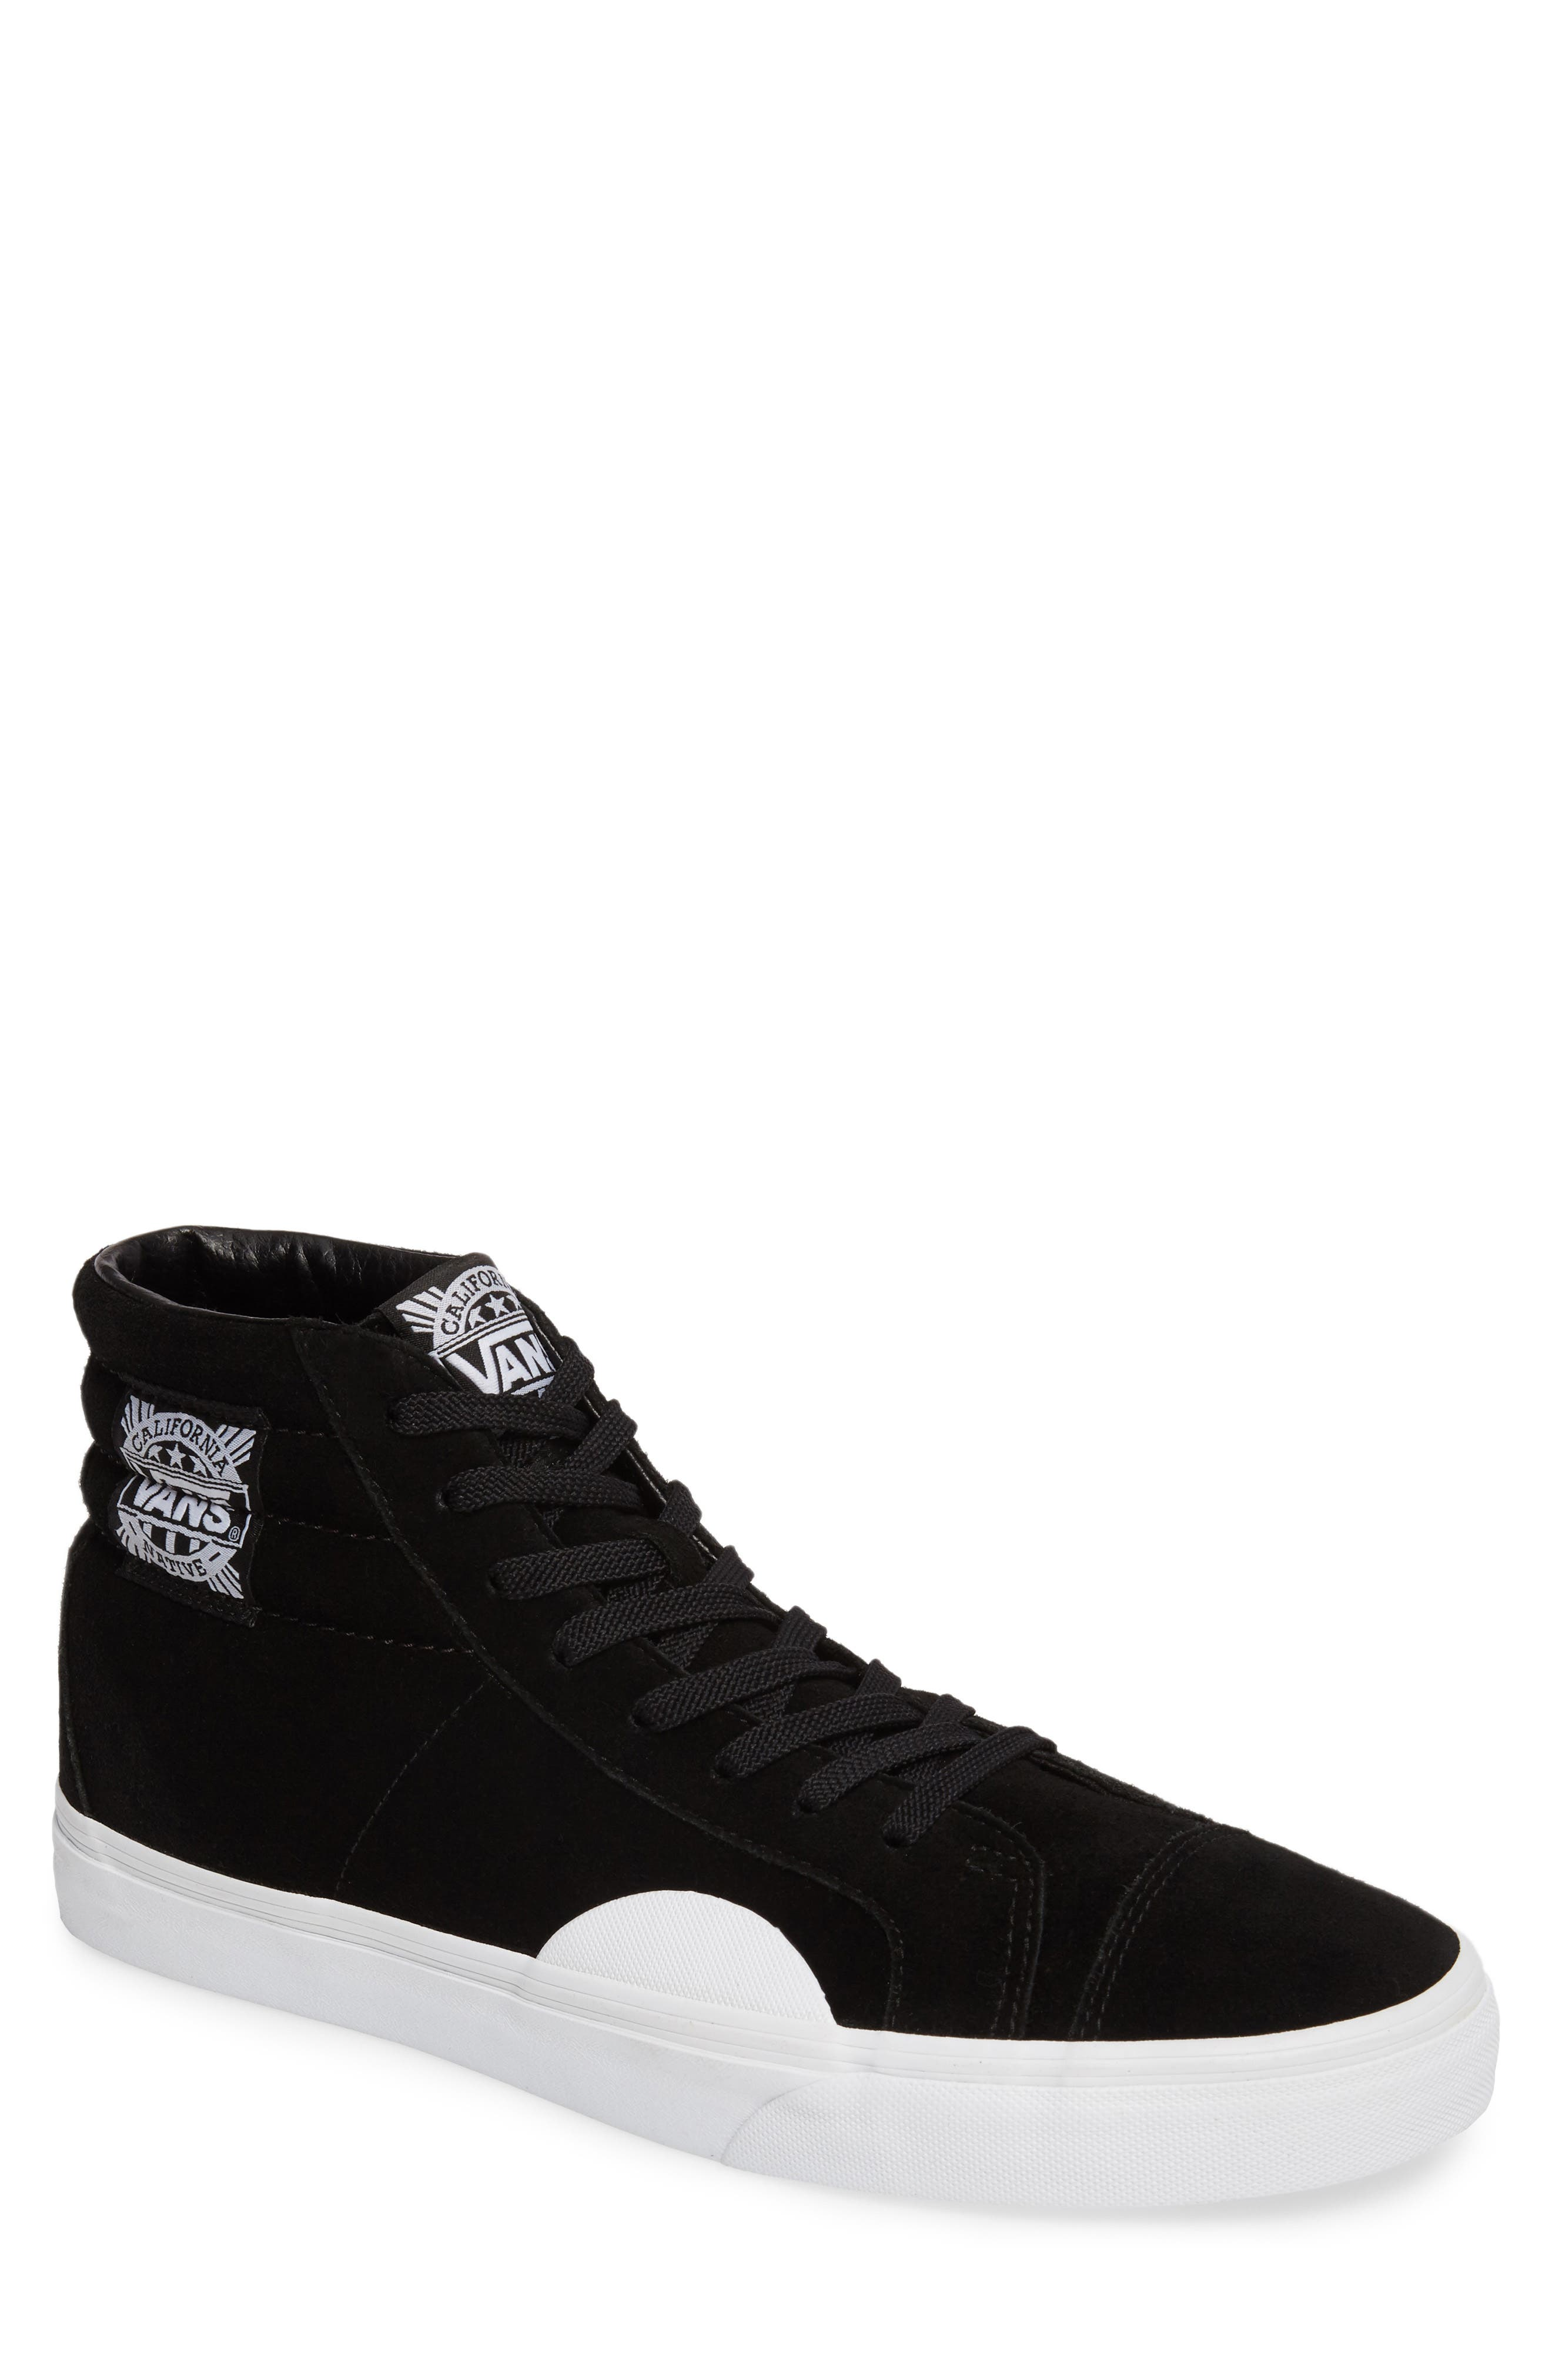 Style 238 Sneaker,                         Main,                         color, Black/ White Suede